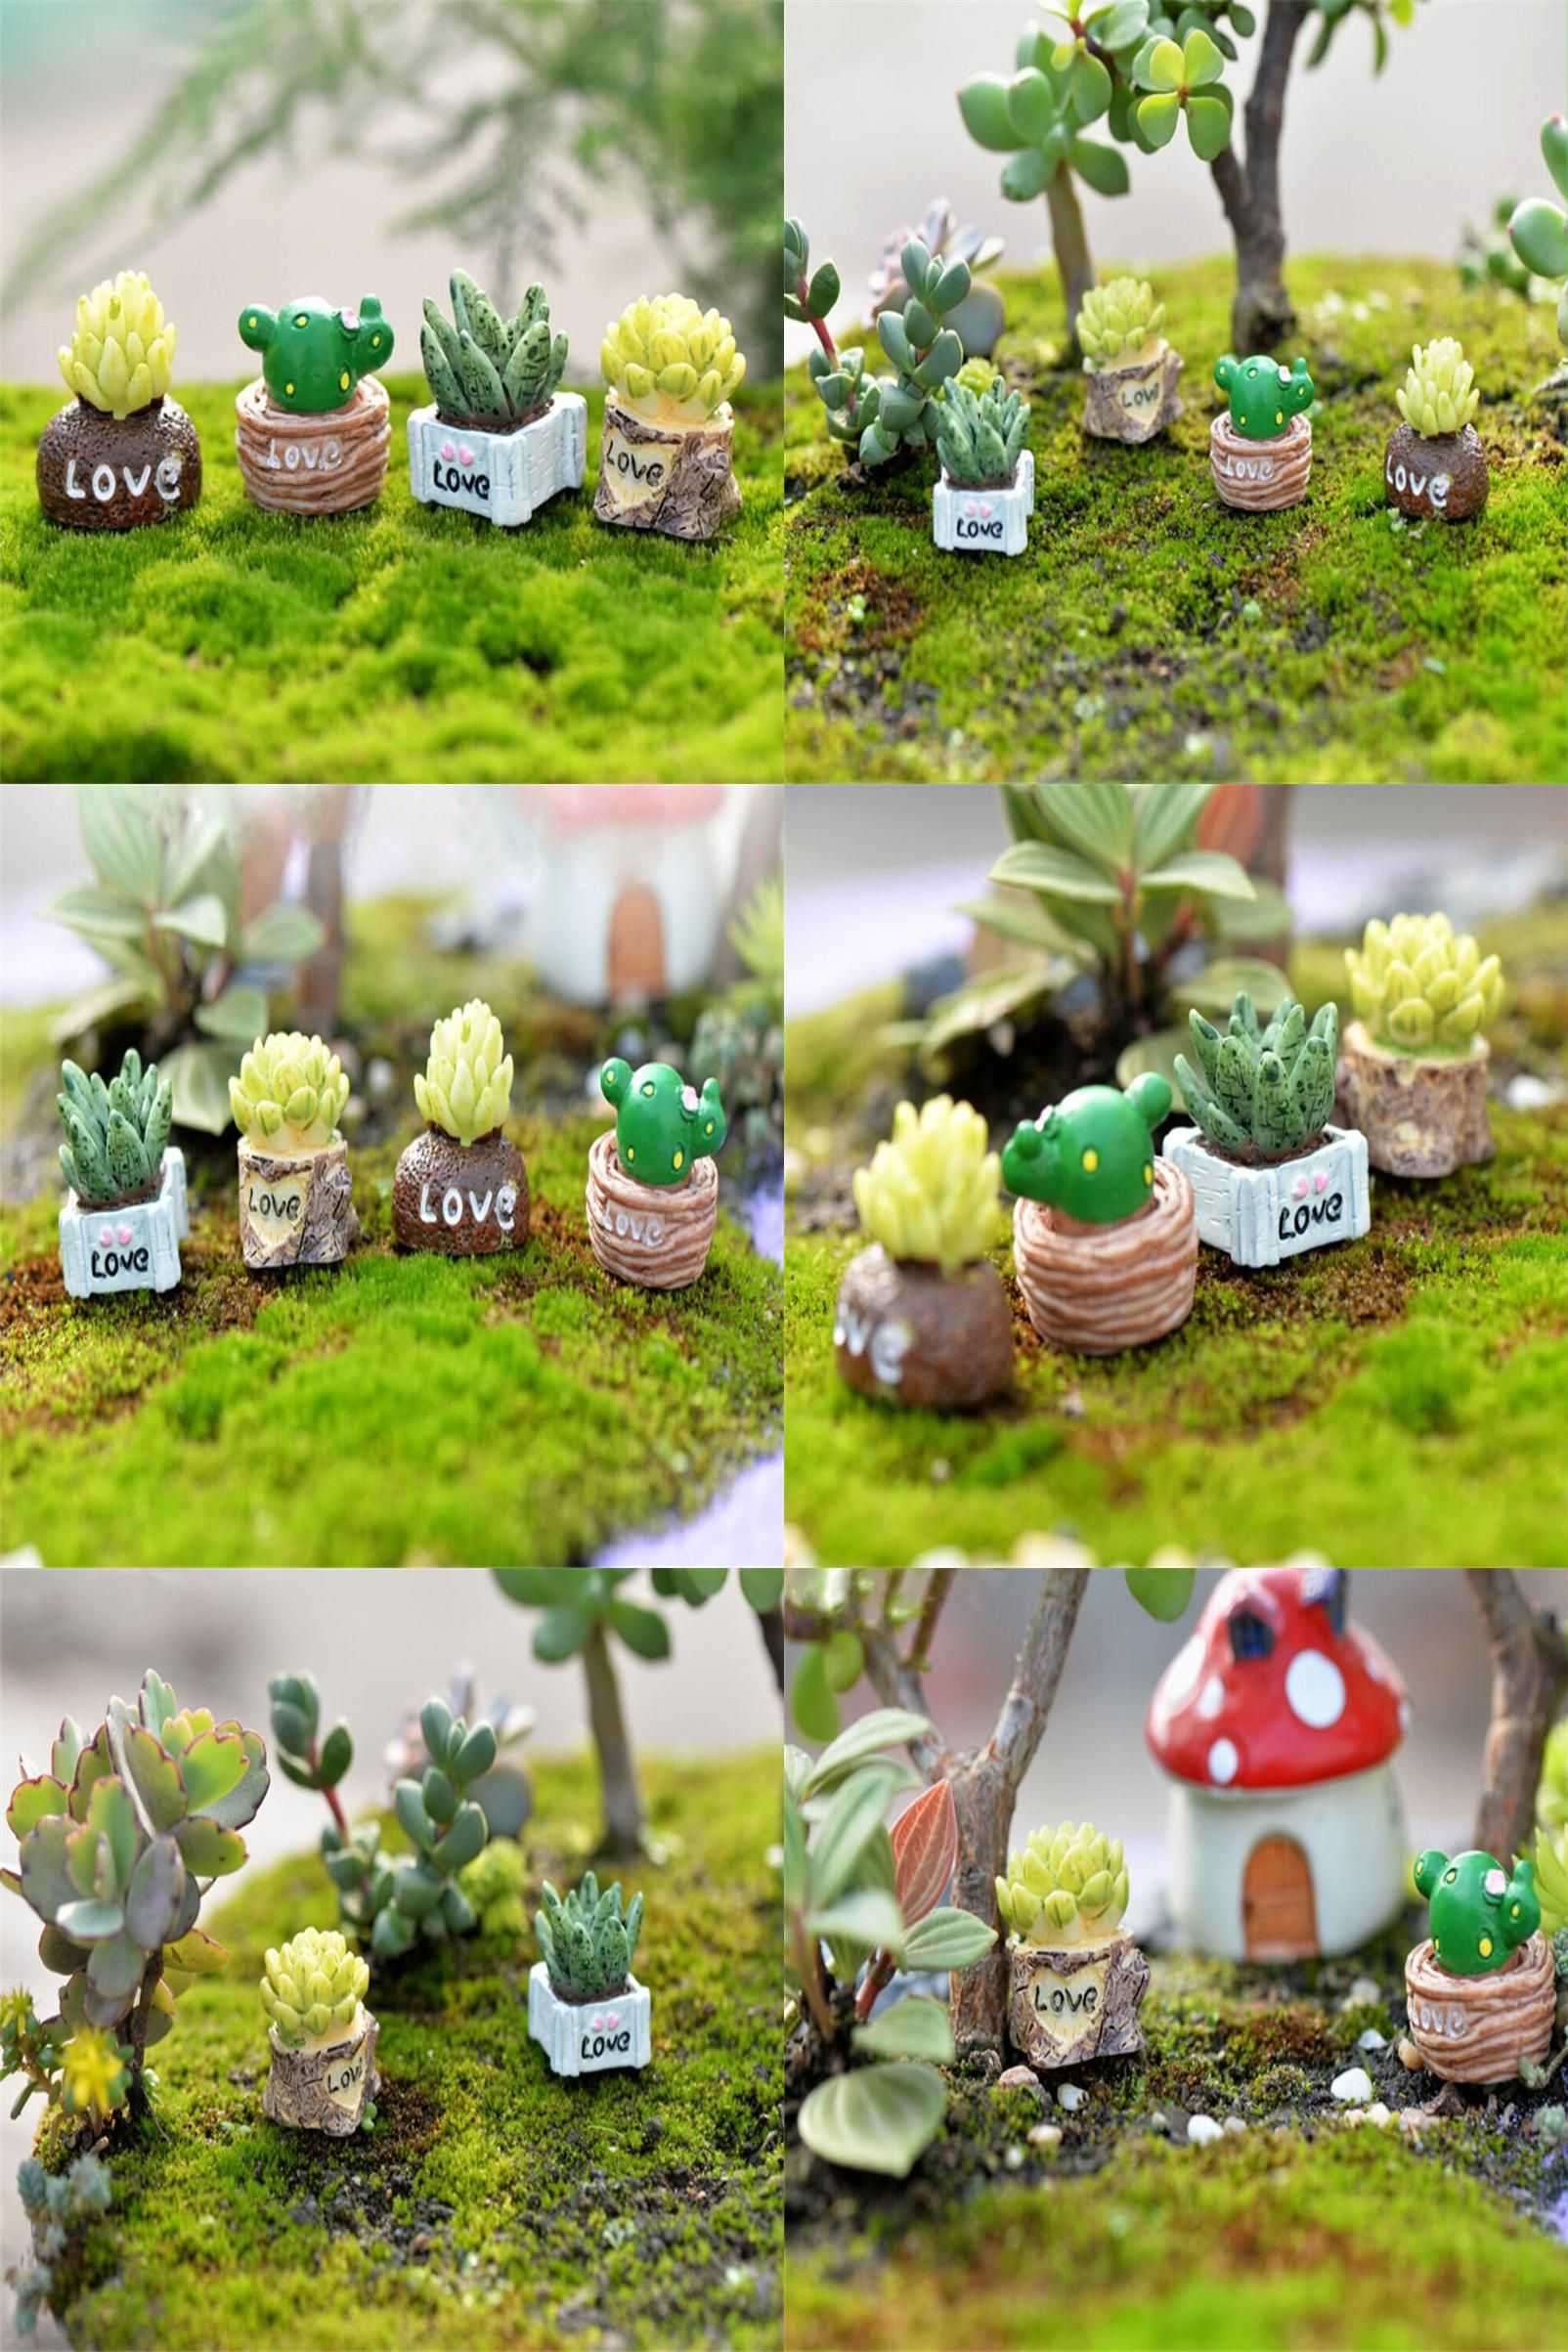 Visit to Buy] Lifelike Mini Artificial Fleshy Cactus Plant Landscape ...